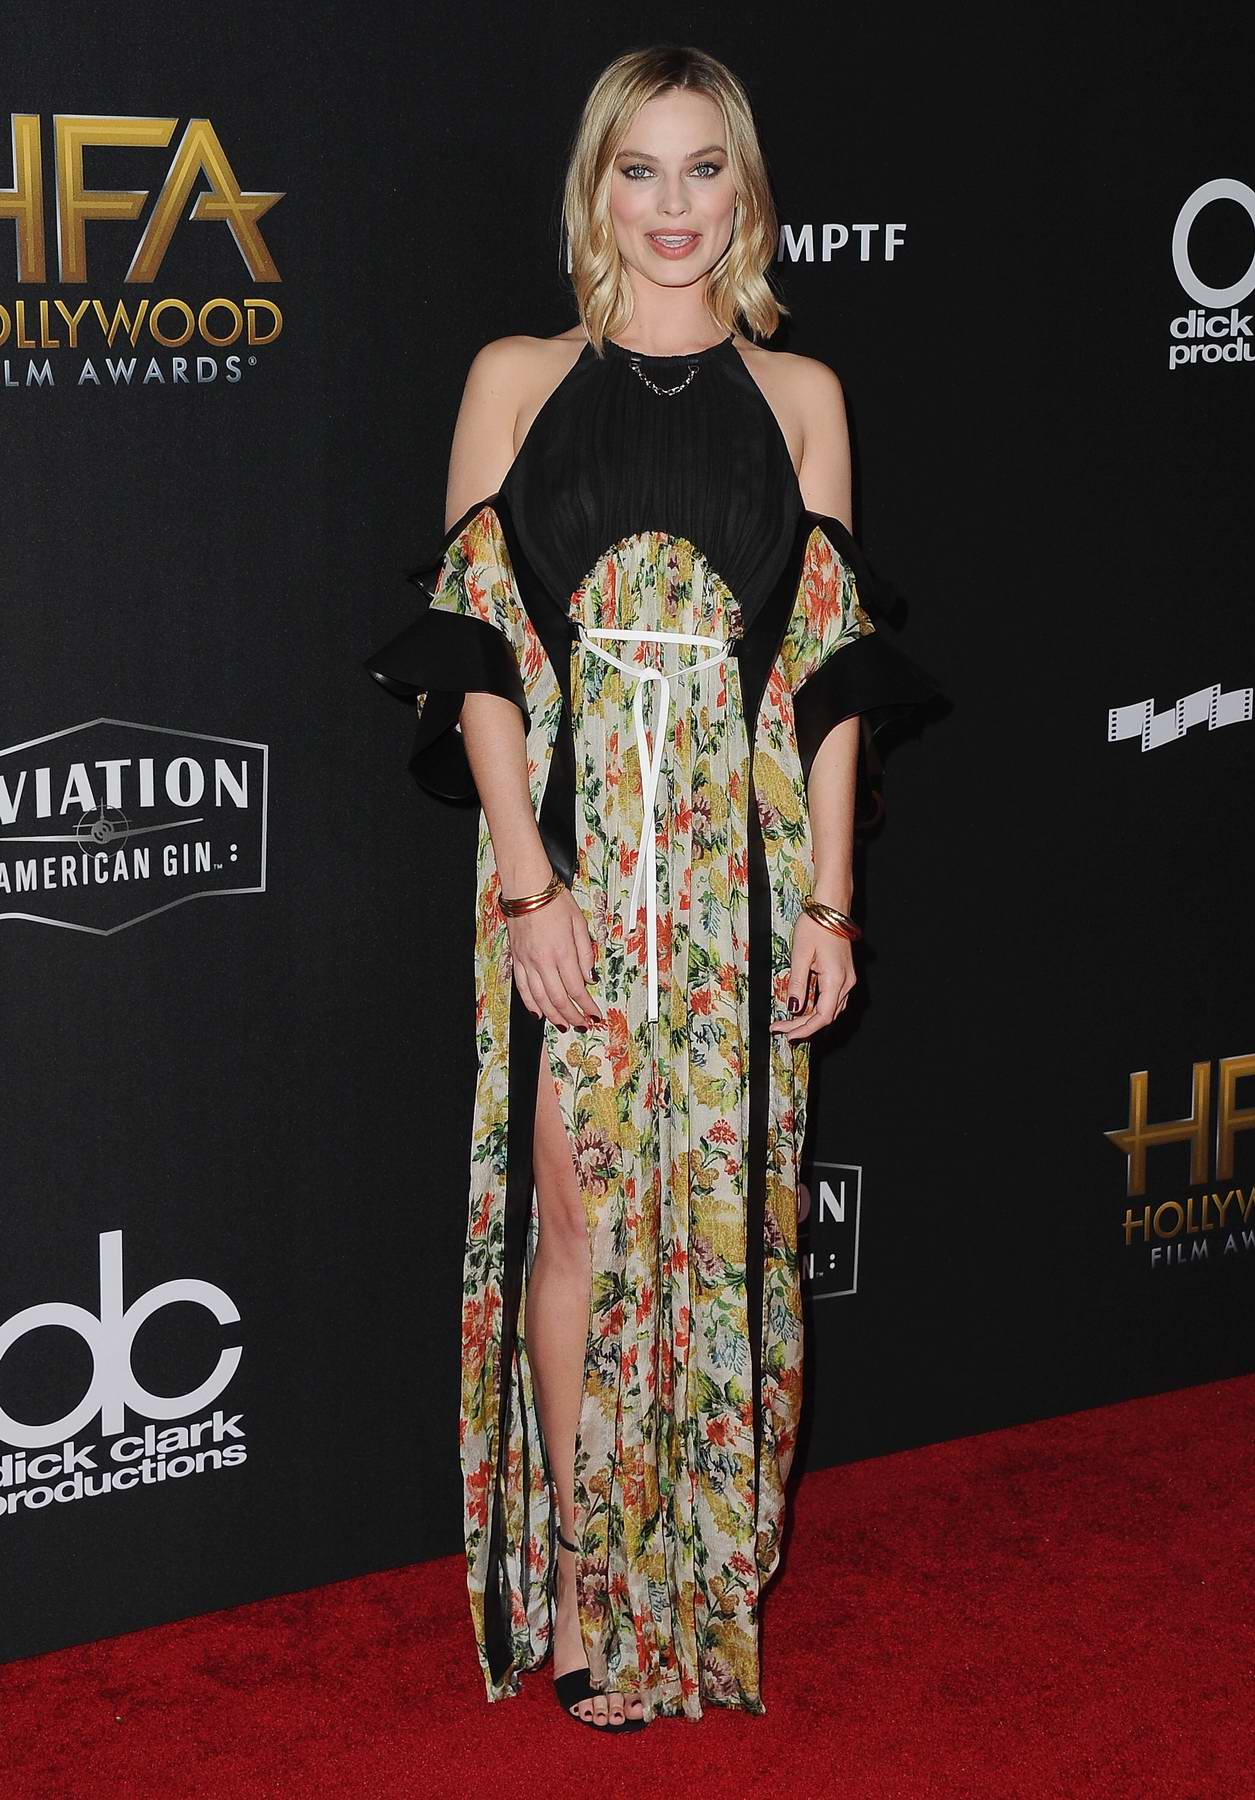 Margot Robbie attends the Hollywood Film Awards in Los Angeles